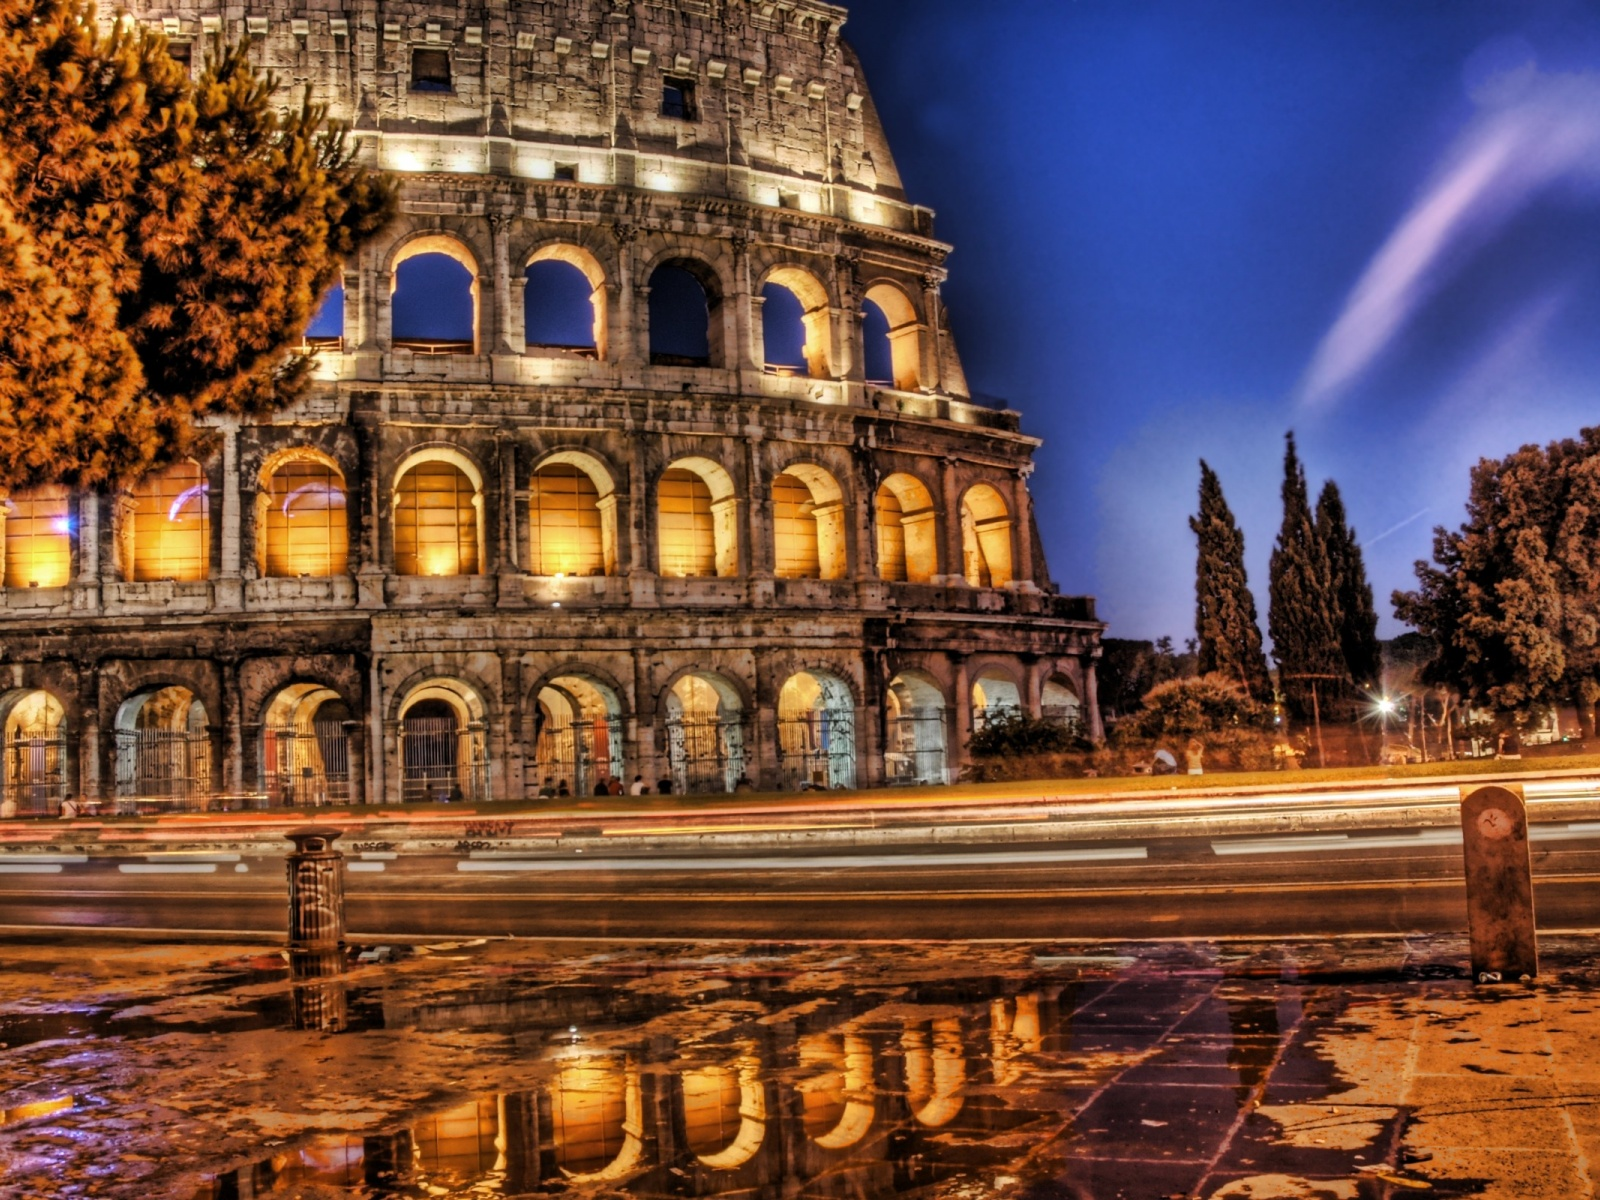 1500x500 Colosseum in HDR Twitter Header Photo HD Wide Wallpaper for Widescreen